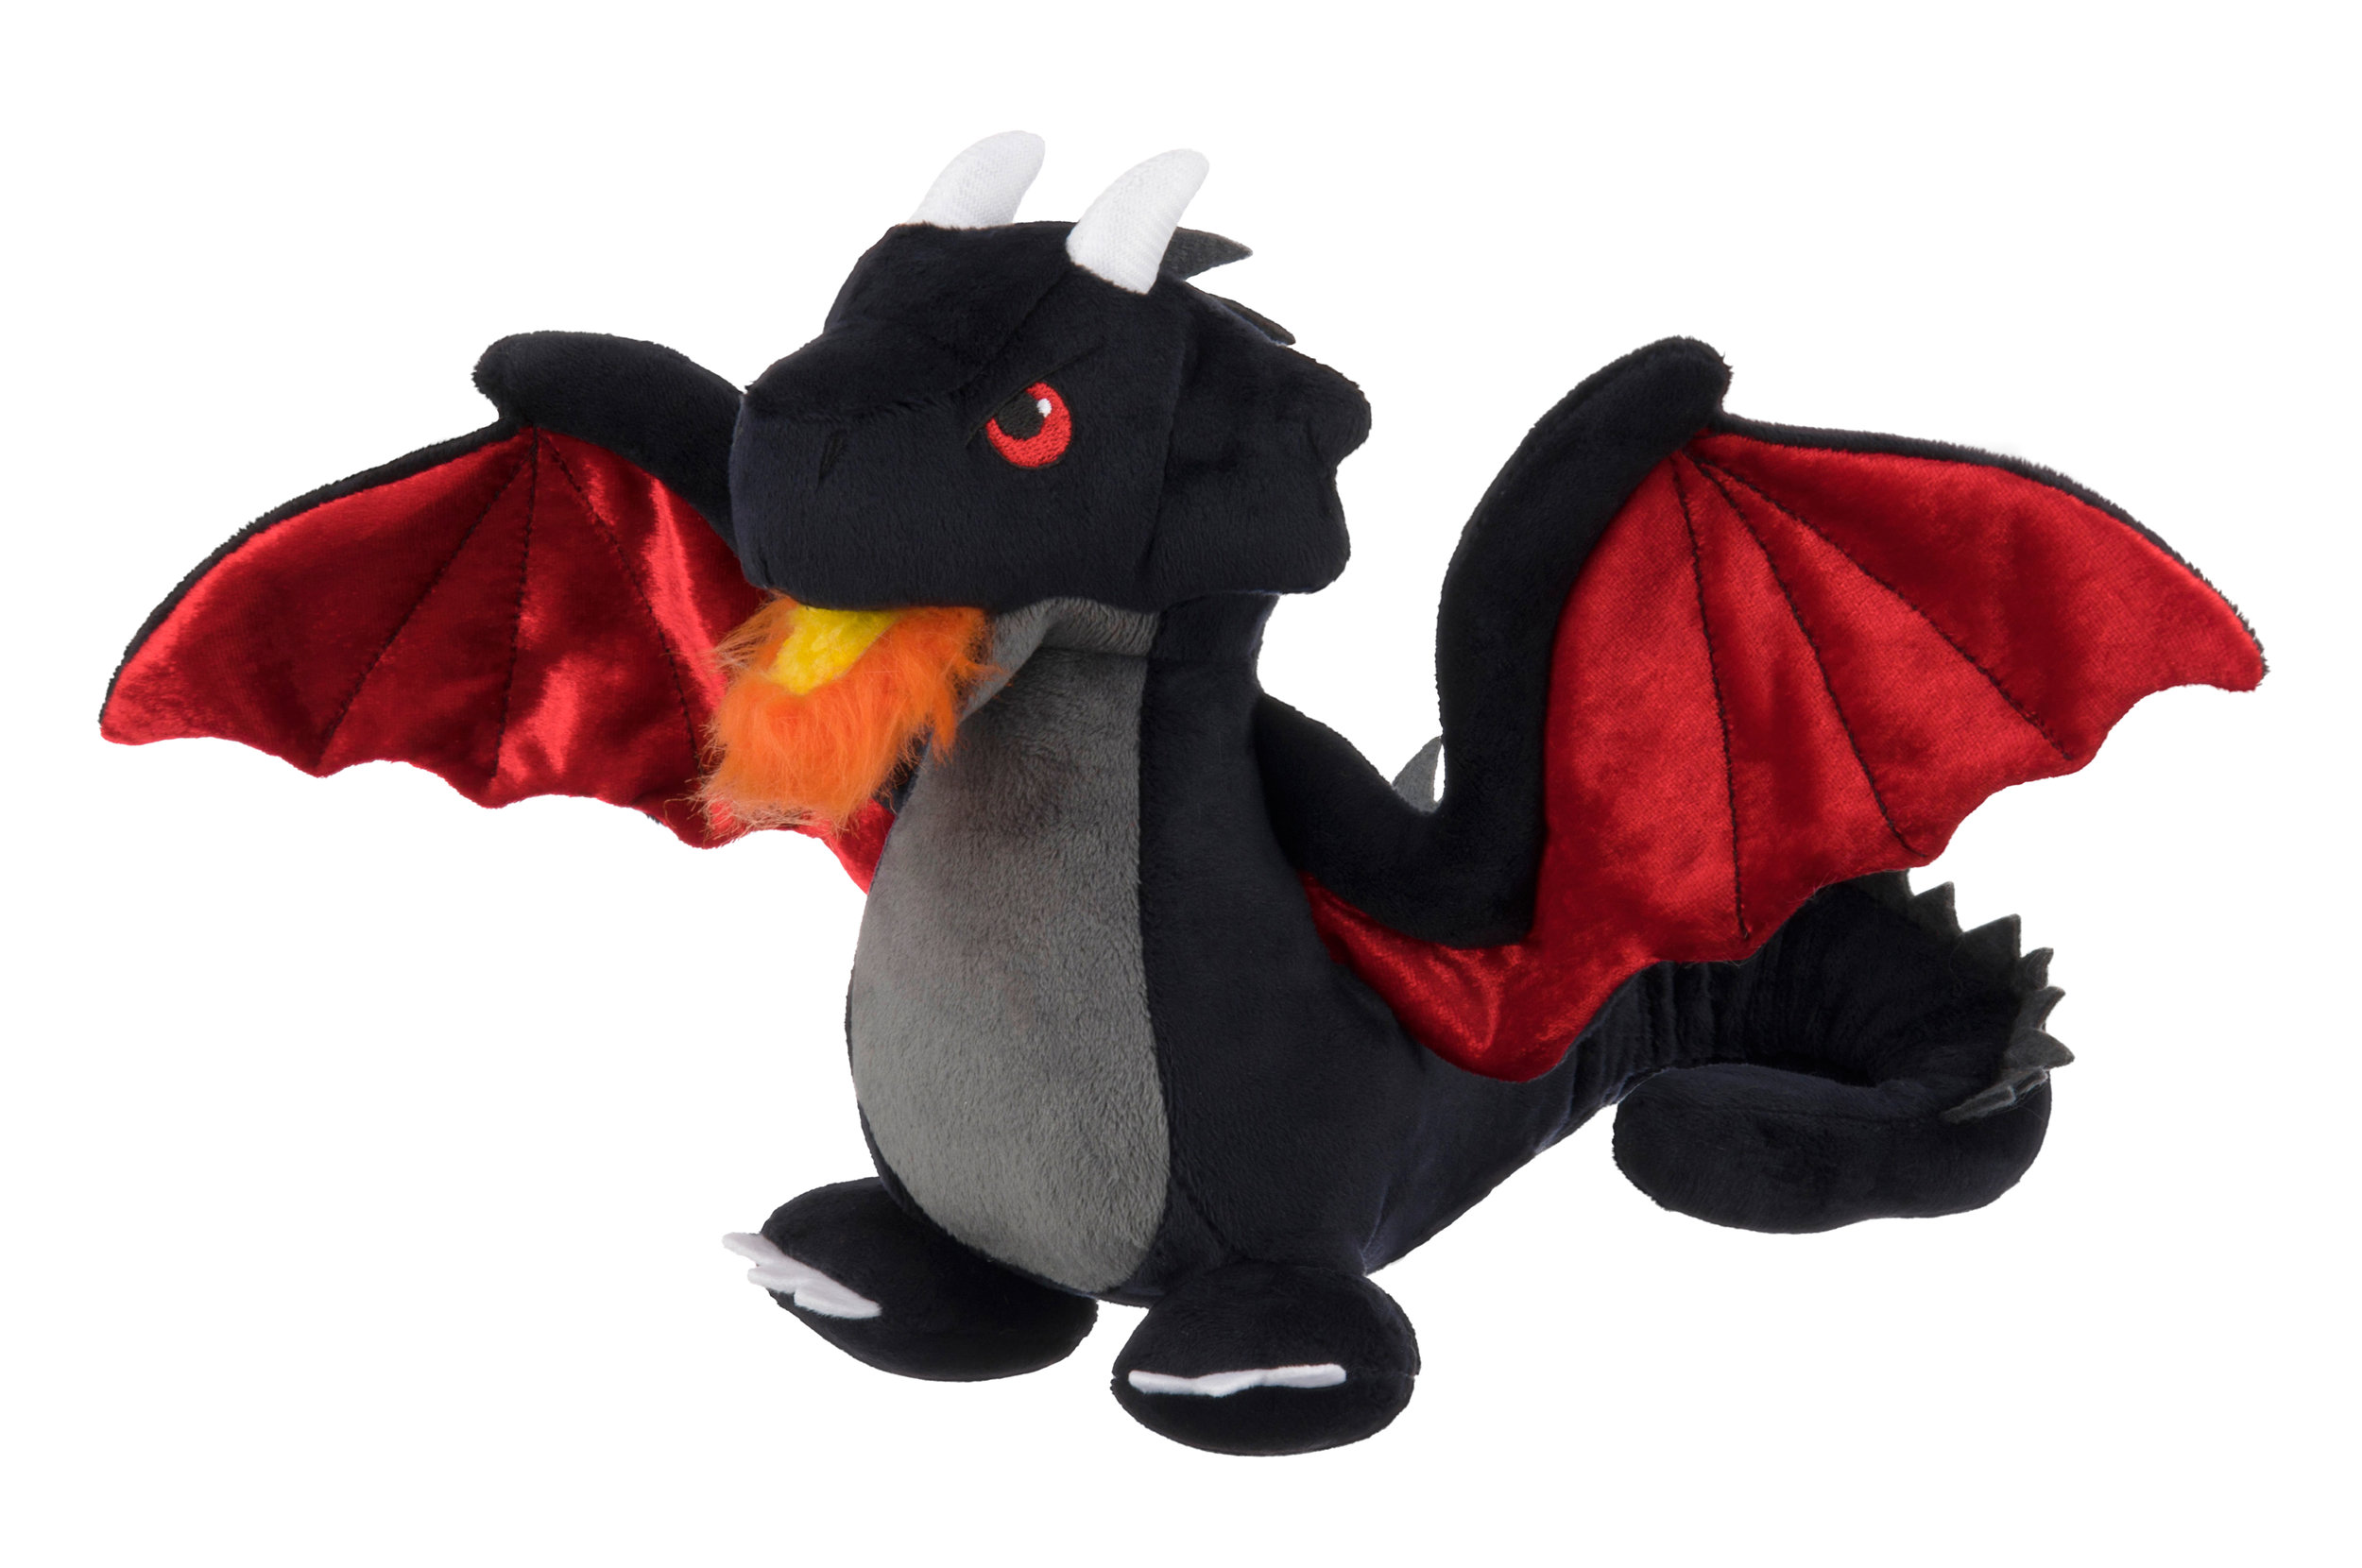 P.L.A.Y. Willow's Mythical Plush Toys - Dragon_1 - High Res.jpg